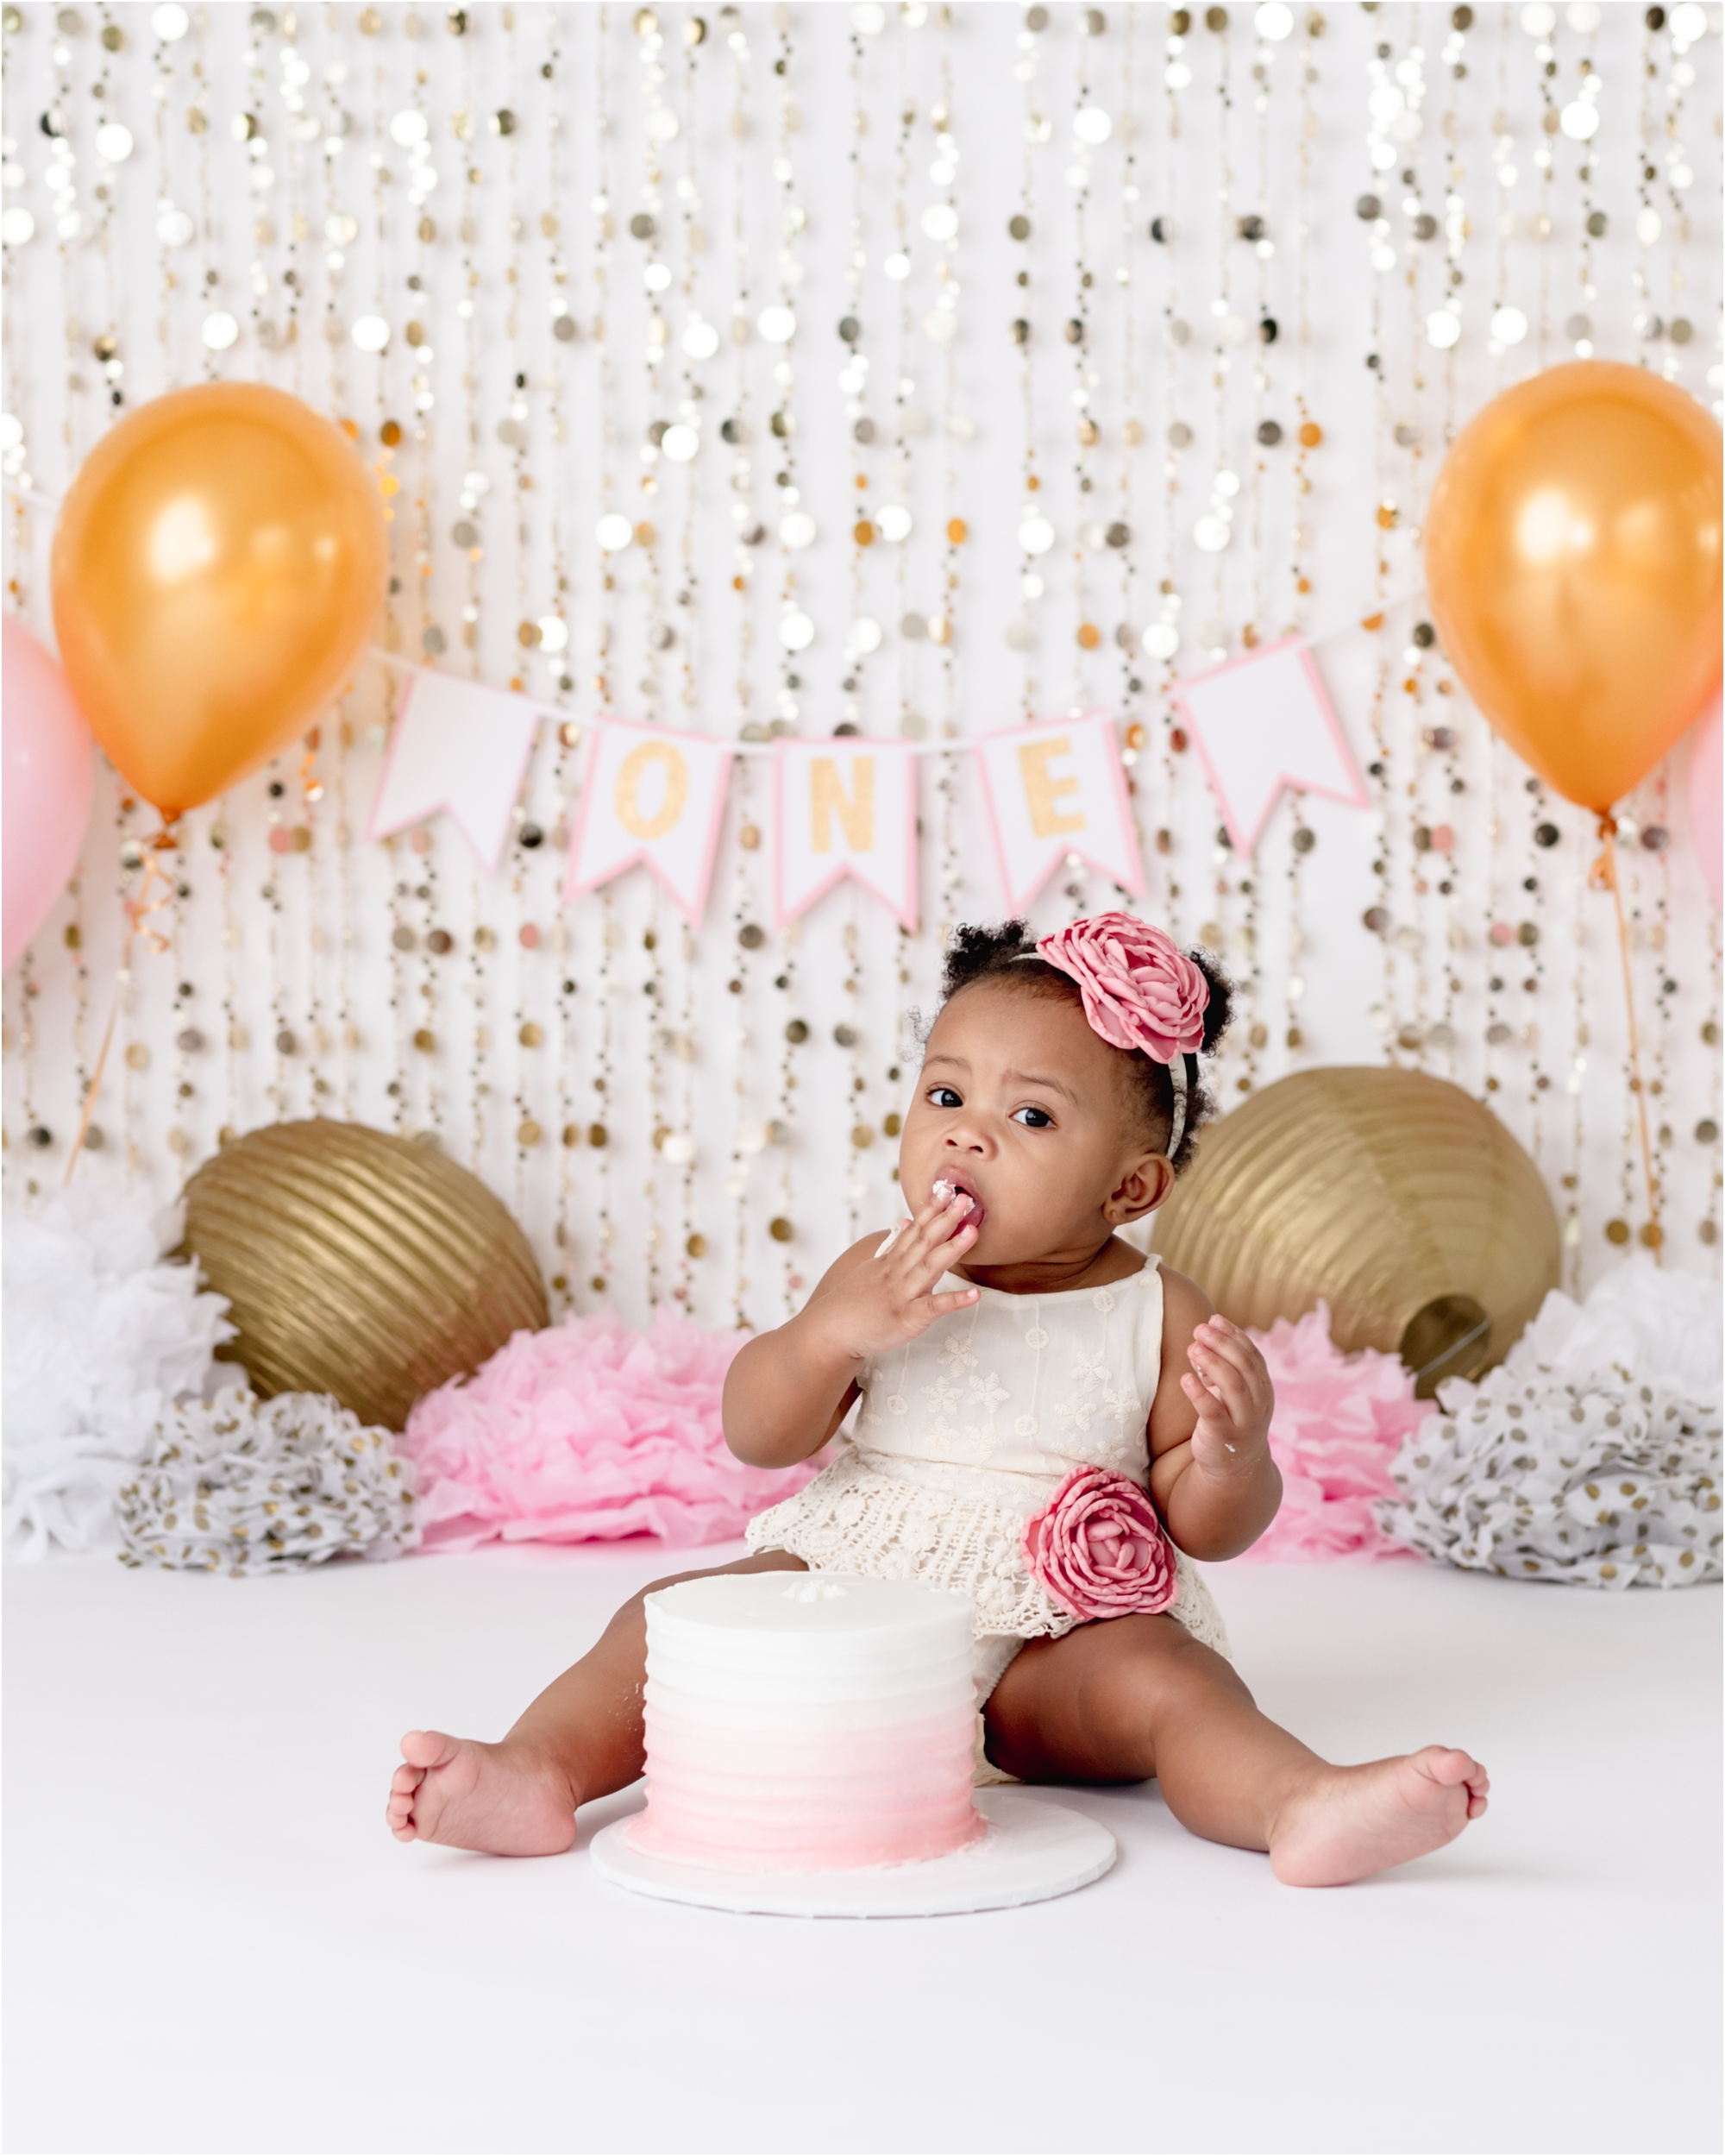 Baby girl tasting frosting during pink and gold themed cake smash session. Photo by Lifetime of Clicks Photography.